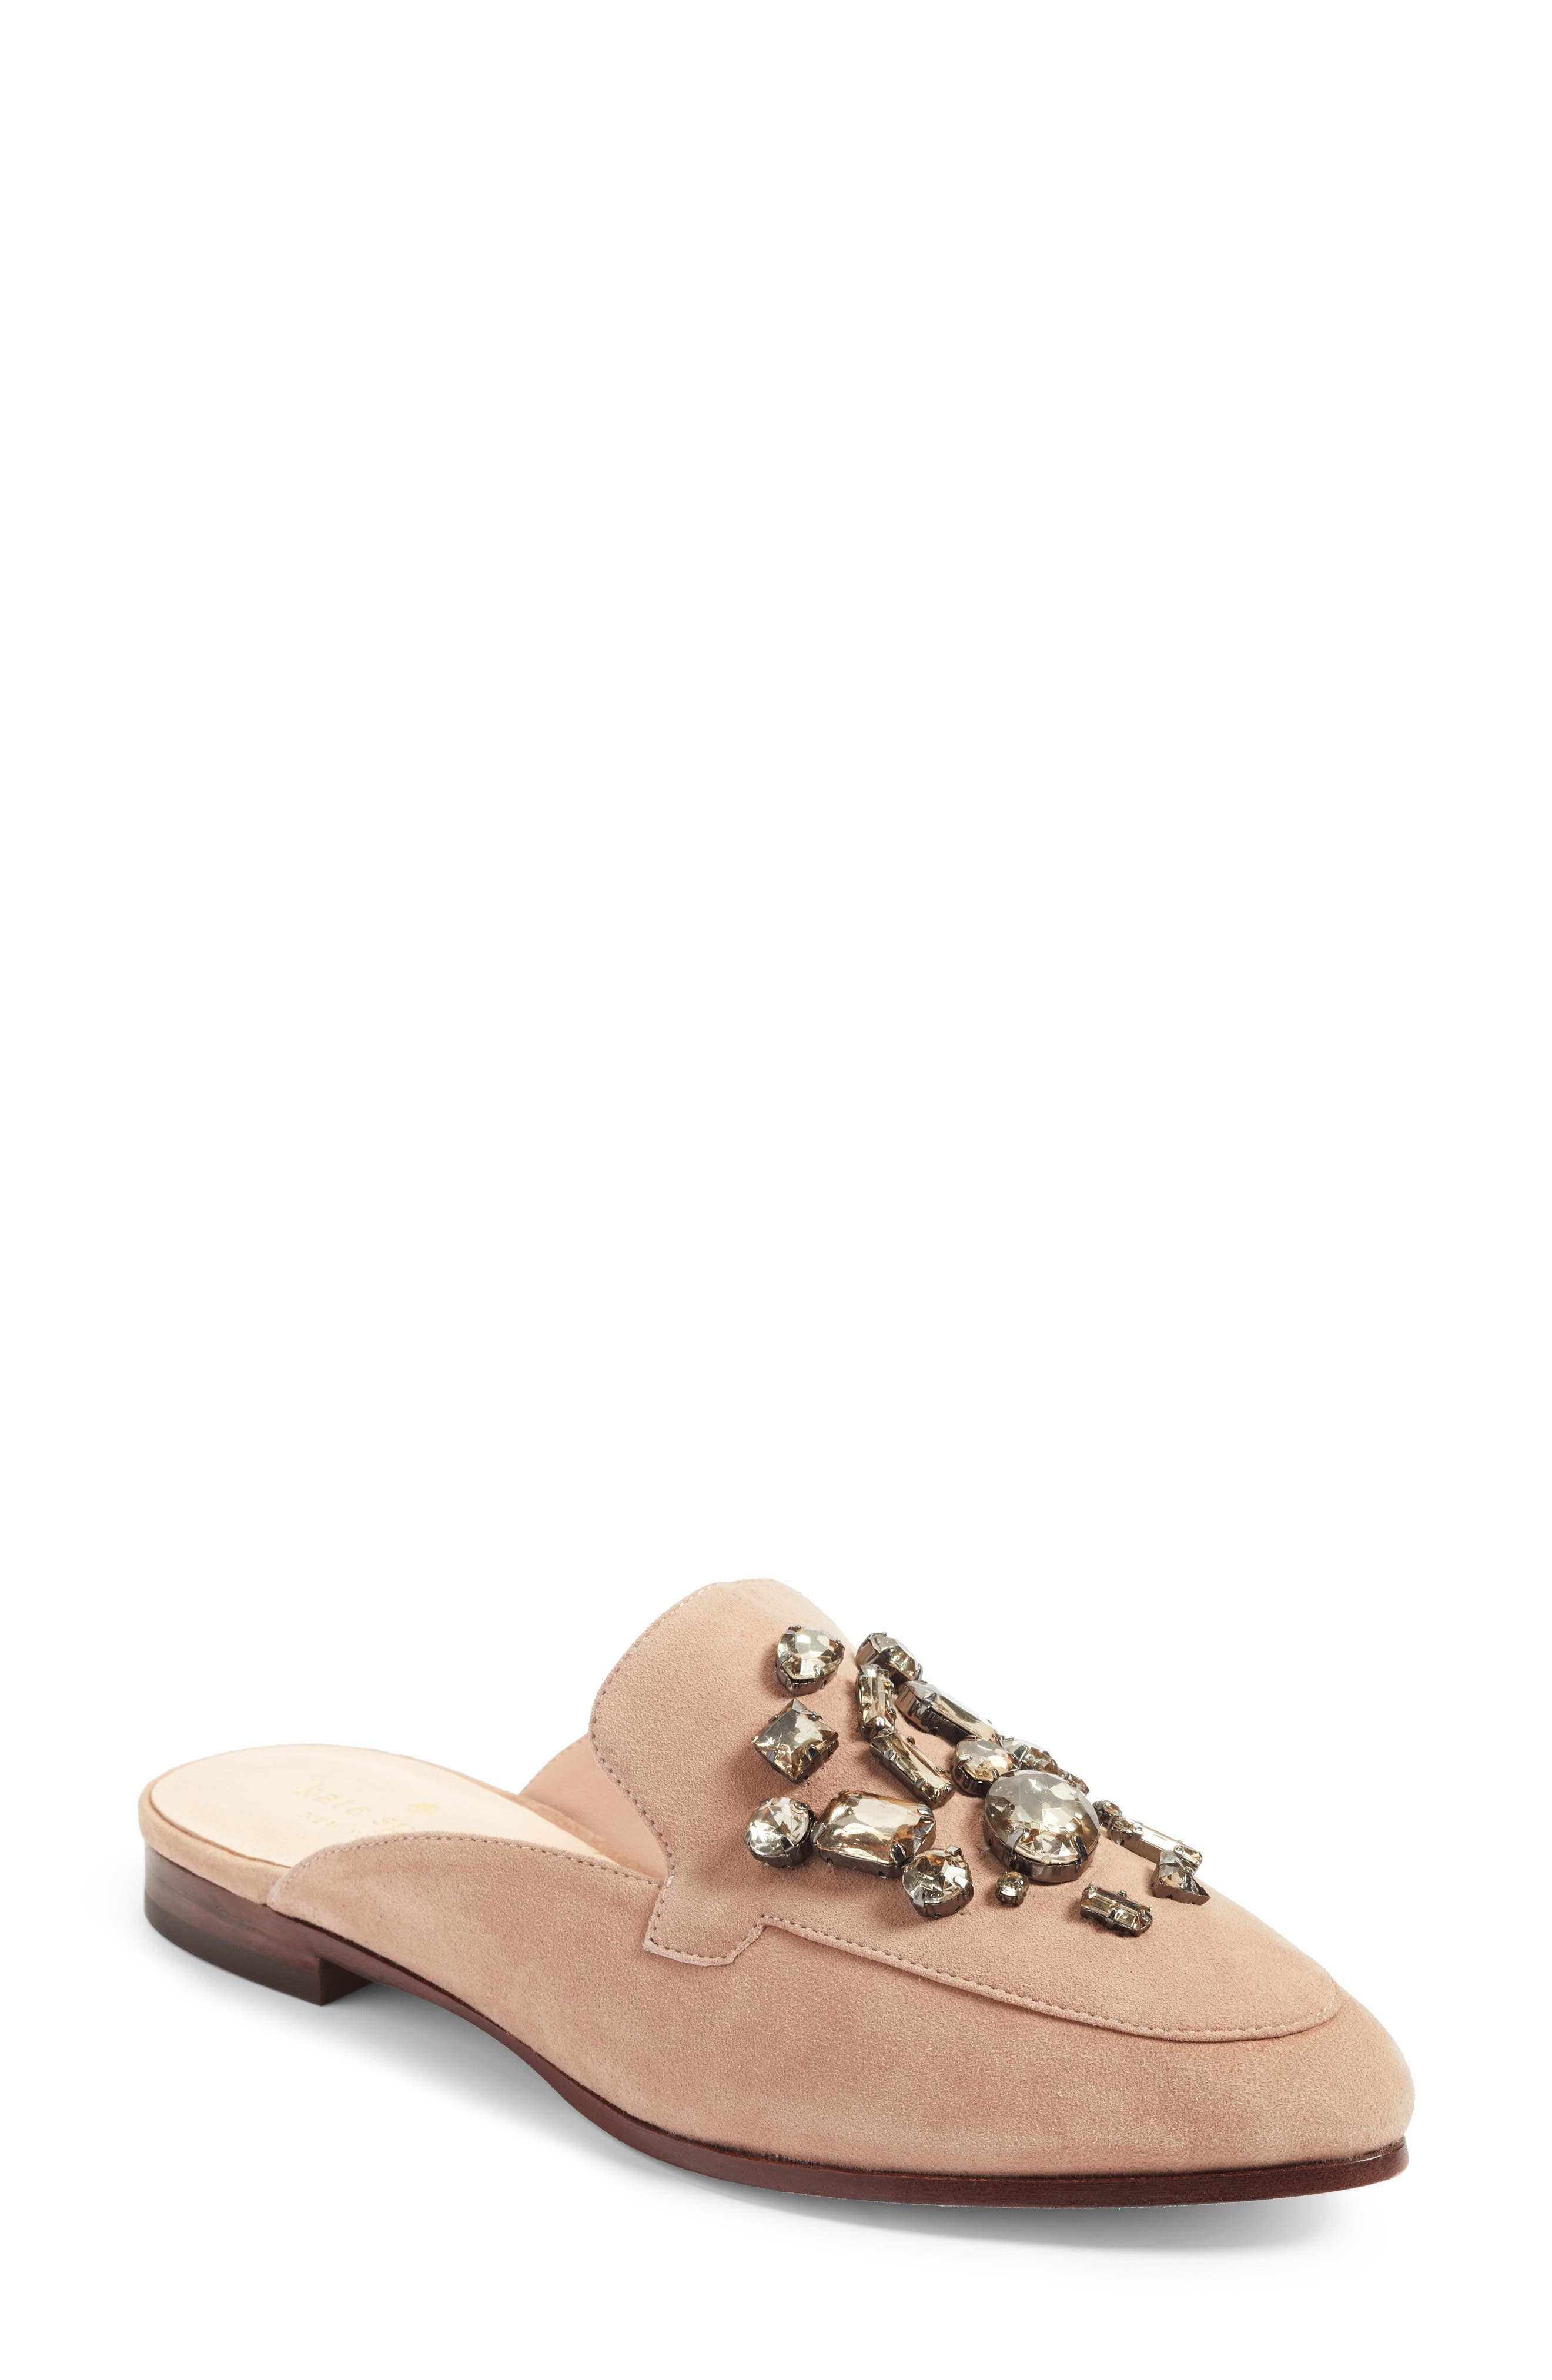 Main Image - kate spade new york cavell loafer mule (Women)